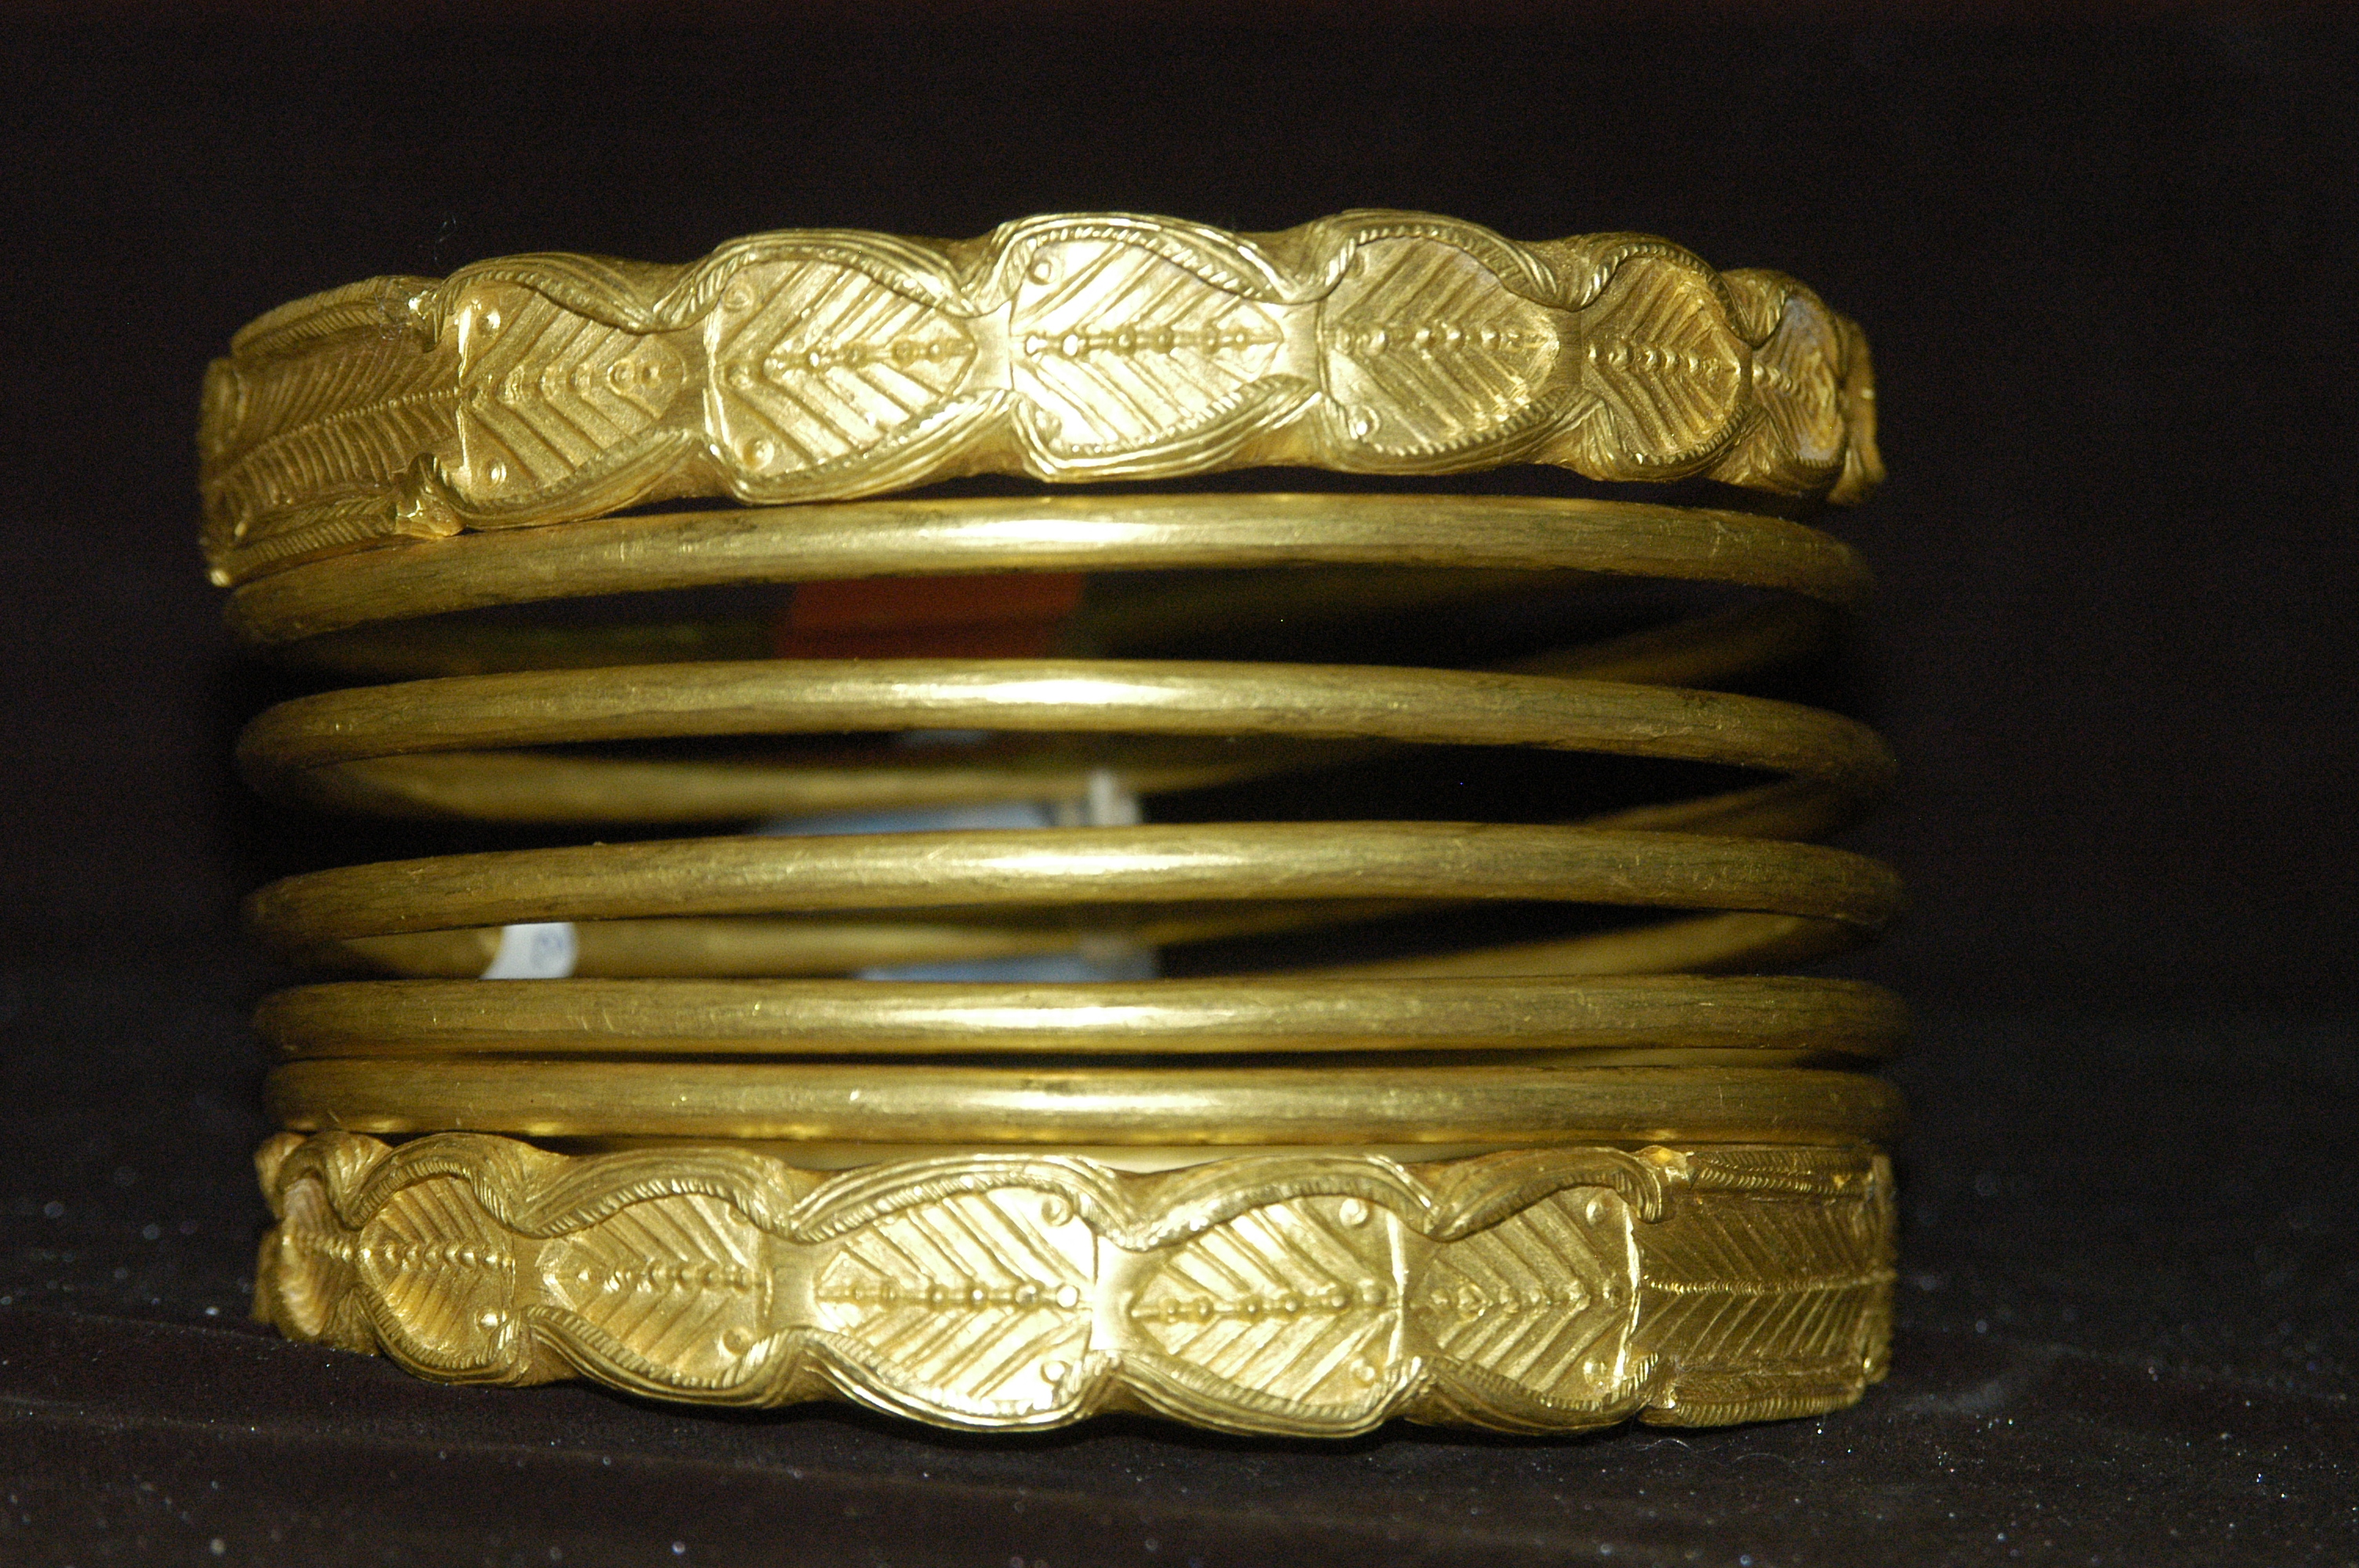 File:Dacian Gold Bracelet at the National Museum of the Union 2007 - 2.jpg  - Wikimedia Commons